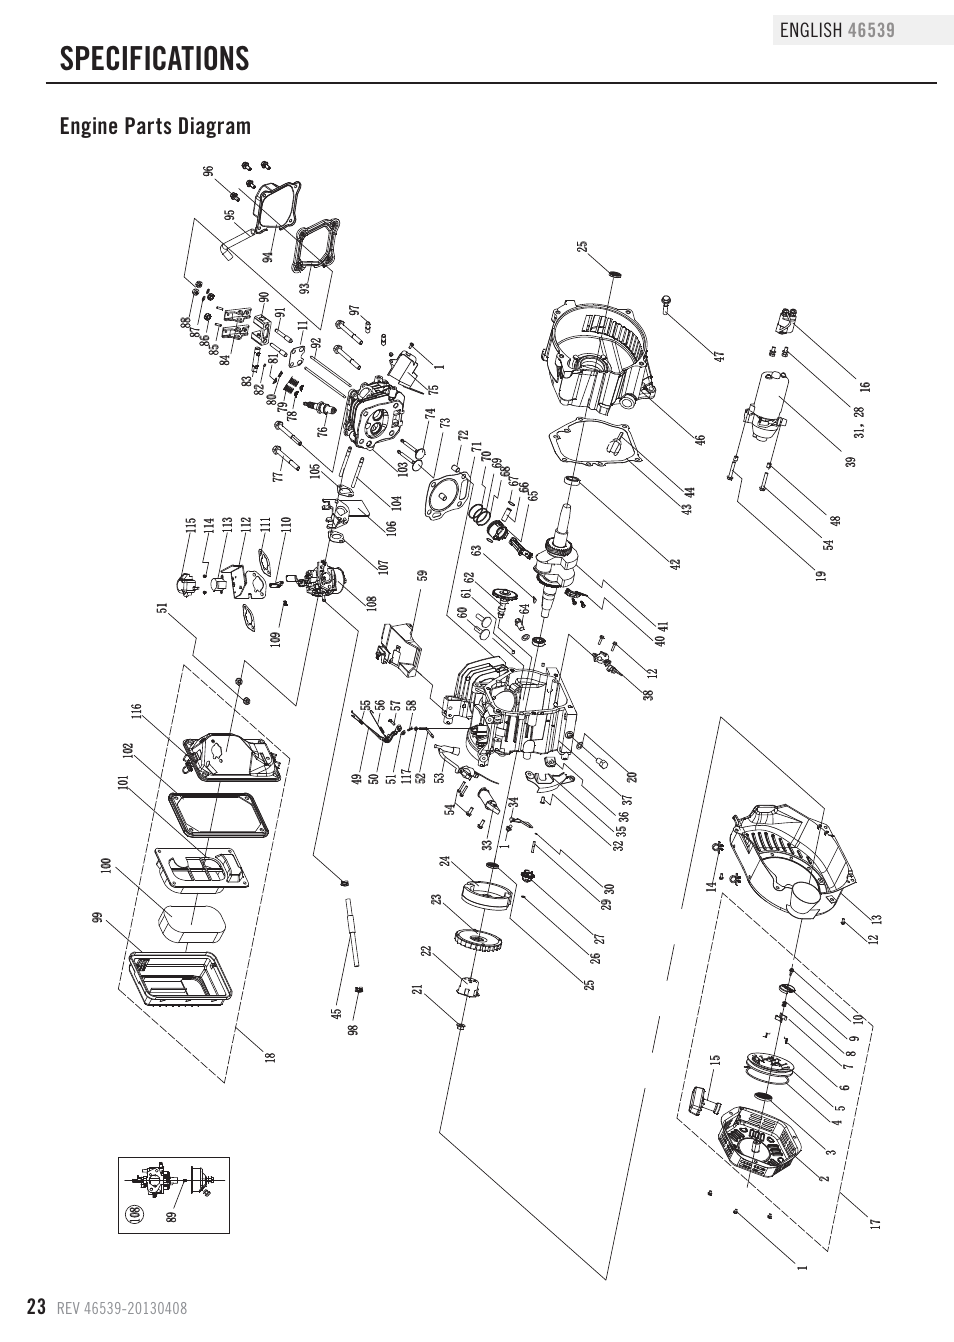 Specifications  Engine Parts Diagram